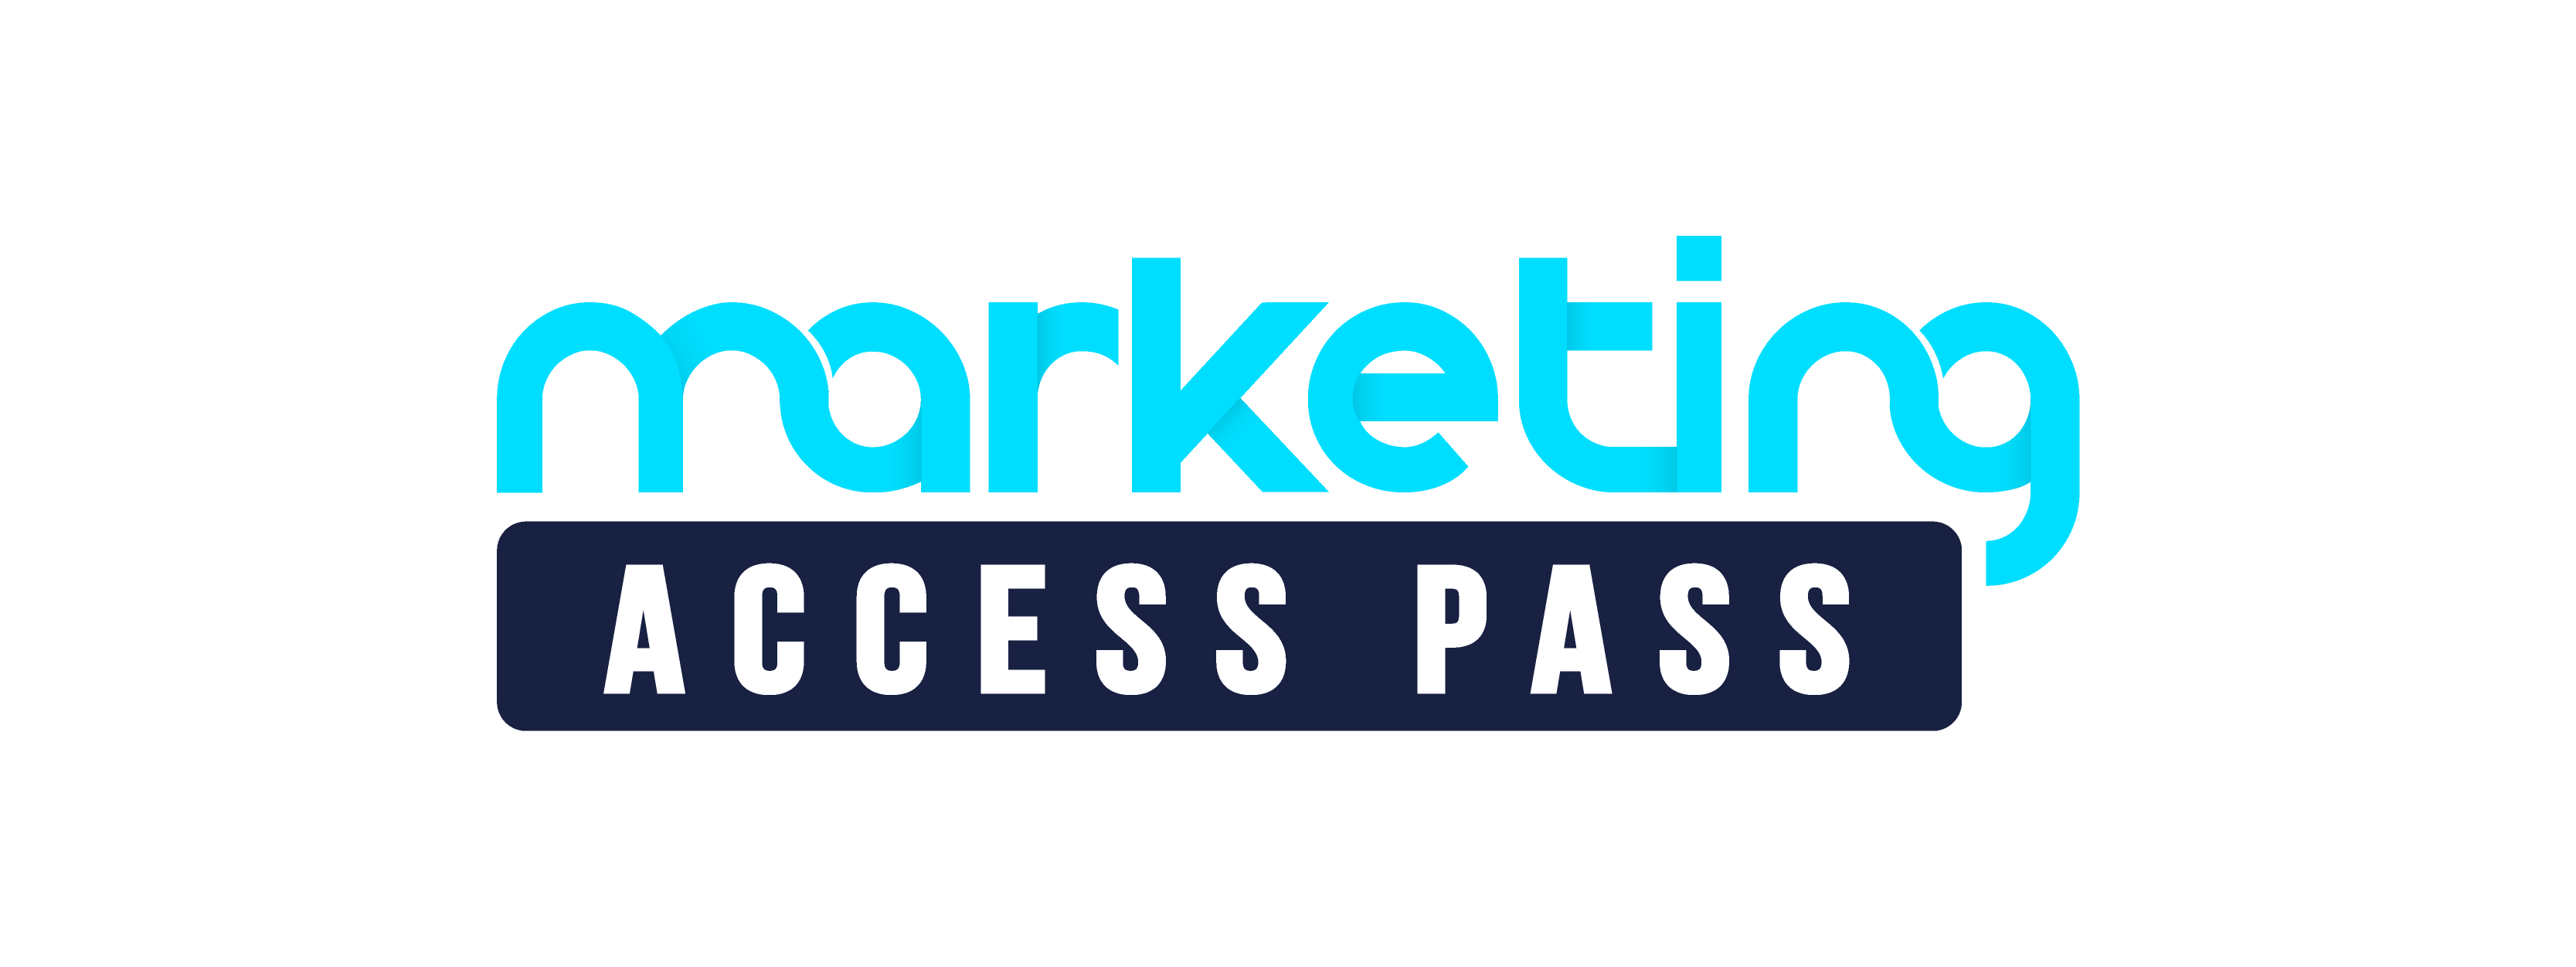 MARKETING ACCESS PASS - LOGO-05